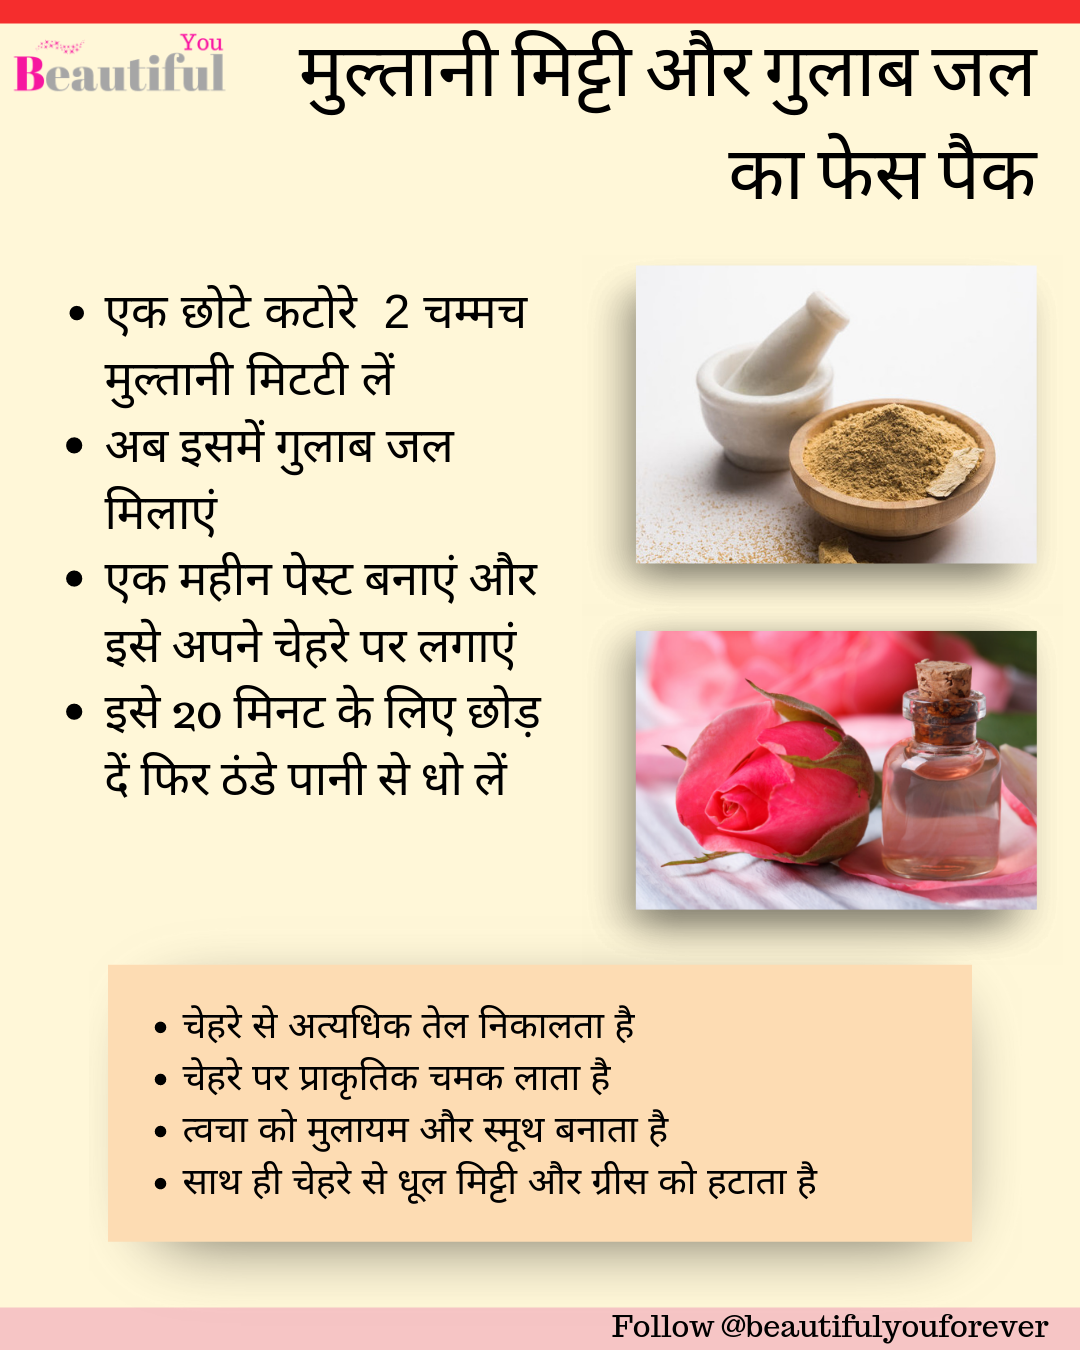 Fuller S Earth And Rose Water Face Mask For An Awesome Looking Skin In Hindi Healthy Skin Tips Health Skin Care Beauty Tips For Glowing Skin